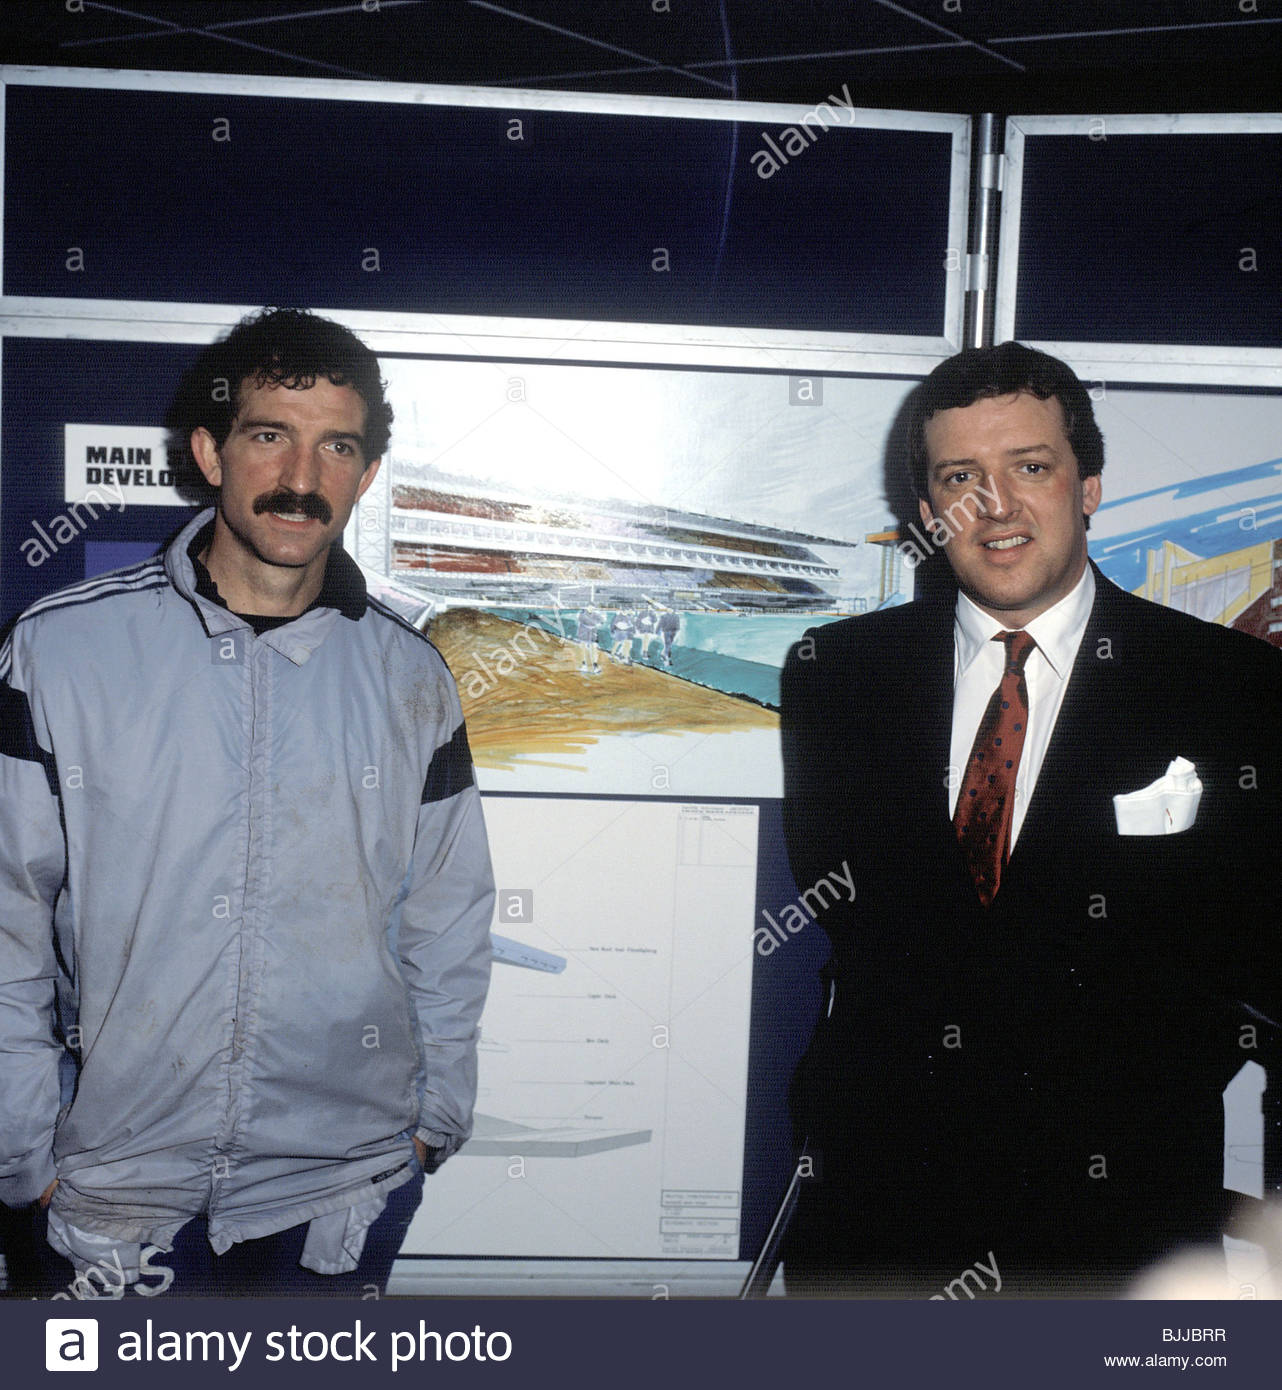 1988/1989 Rangers manager Graeme Souness and chairman David Murray at the launch of plans to develop Ibrox - Stock Image